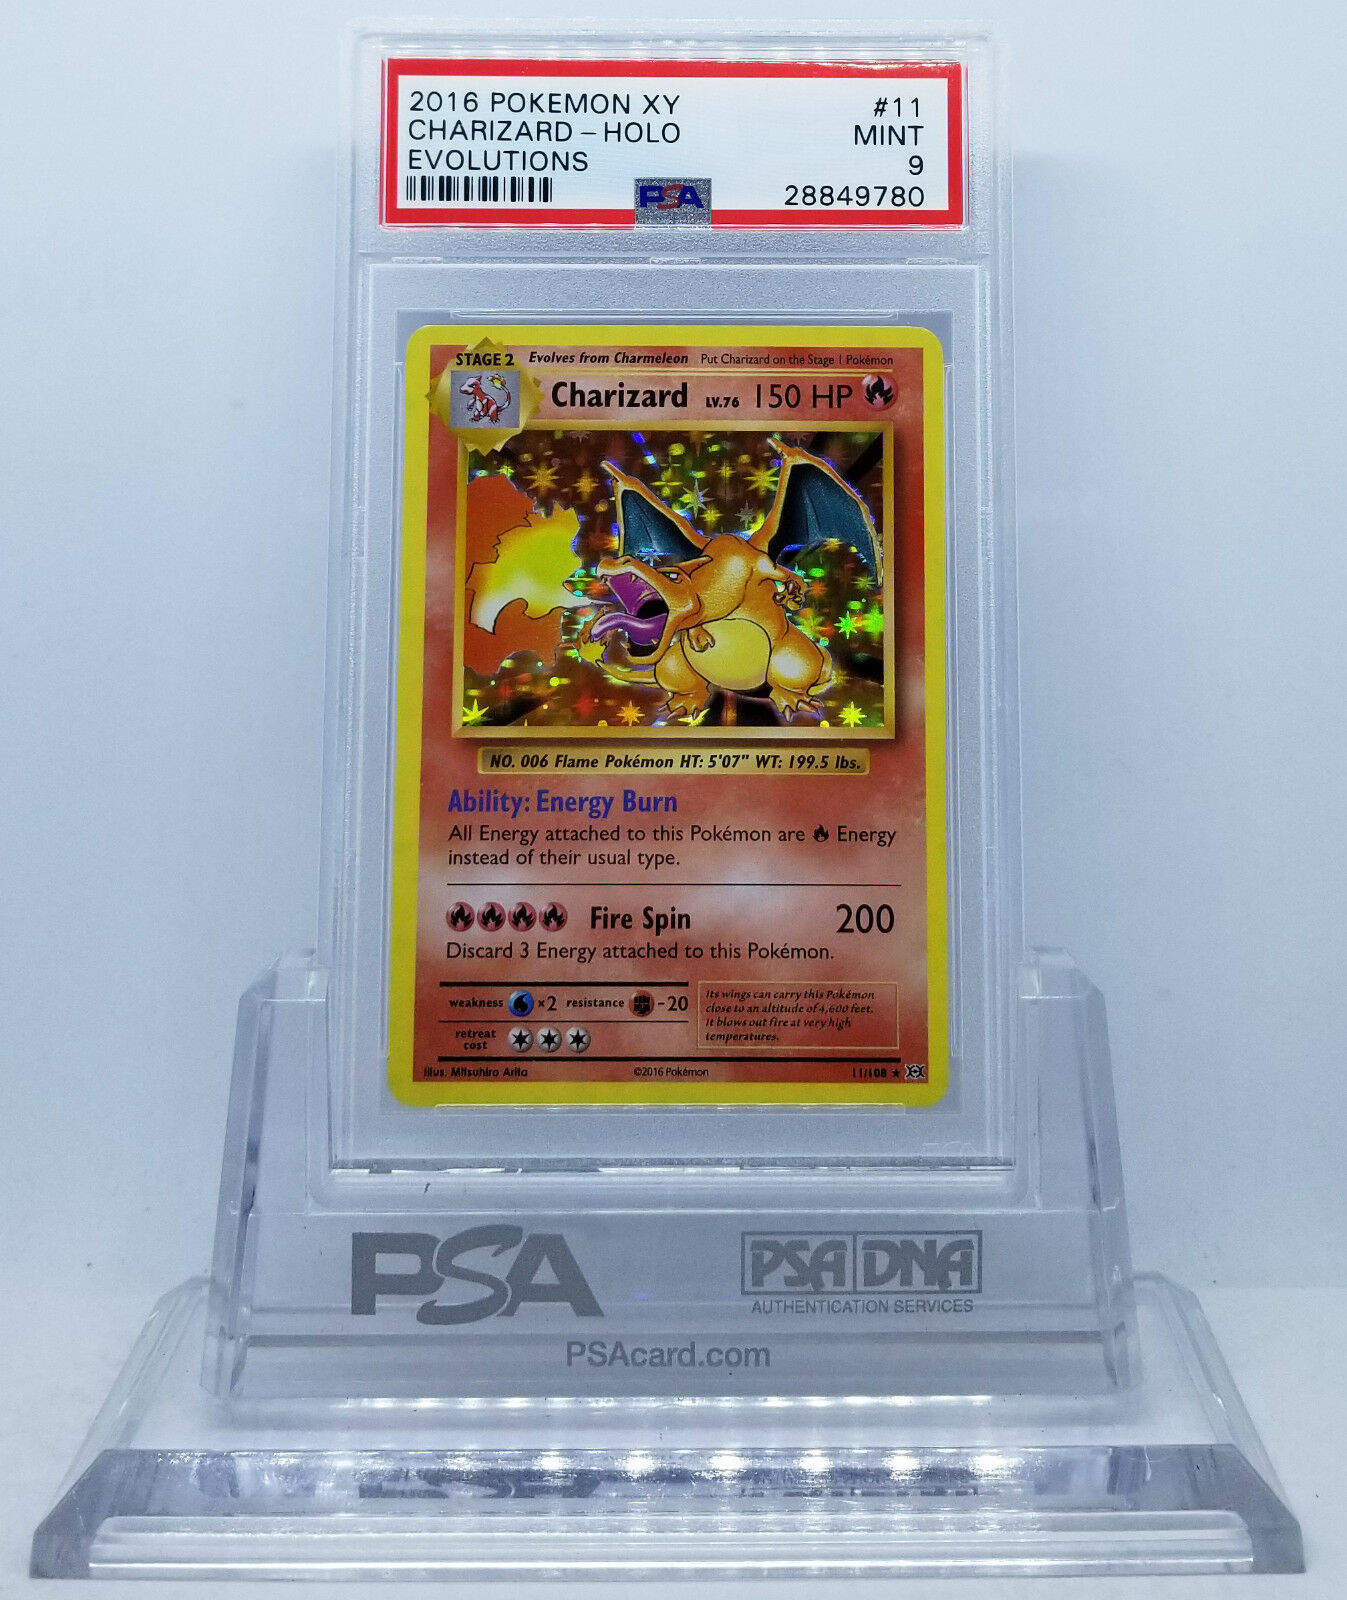 Pokemon XY EVOLUTIONS CHARIZARD #11 HOLO FOIL RARE CARD PSA 9 MINT #*